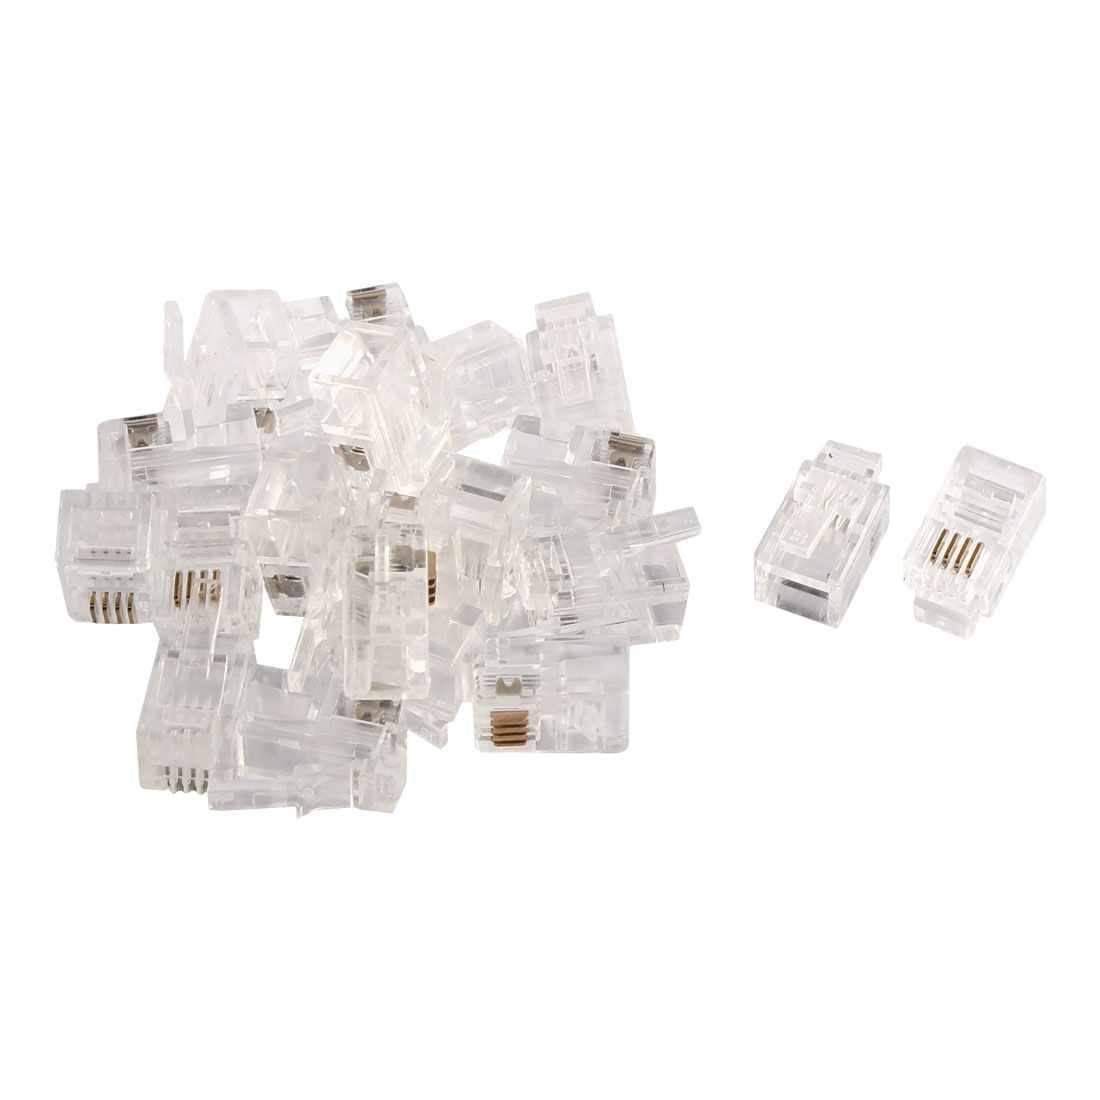 Household RJ9 4P4C Telephone Cable End Phone Adapter Connector Modular 20pcs